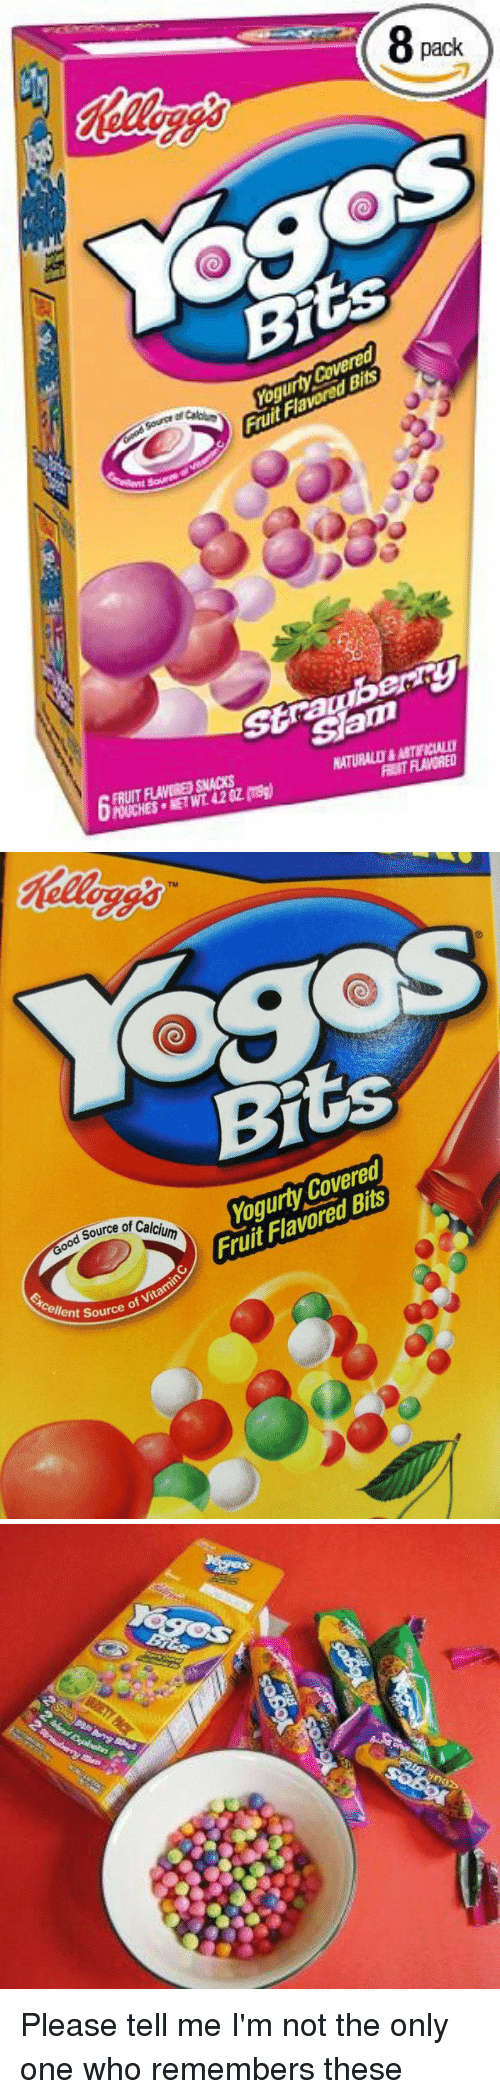 Funny: 8.  pack  OSCS  Bits  YogurtyCovered,  Fruit Flavored Bits  uit FLAVORED  am  ESE1WL42azmag)  NATURALD & AETECIALLI  REIT RAMORED   Bits  Bits  Flavored Fruit source of Calcium  vitamin  lent source of Please tell me I'm not the only one who remembers these